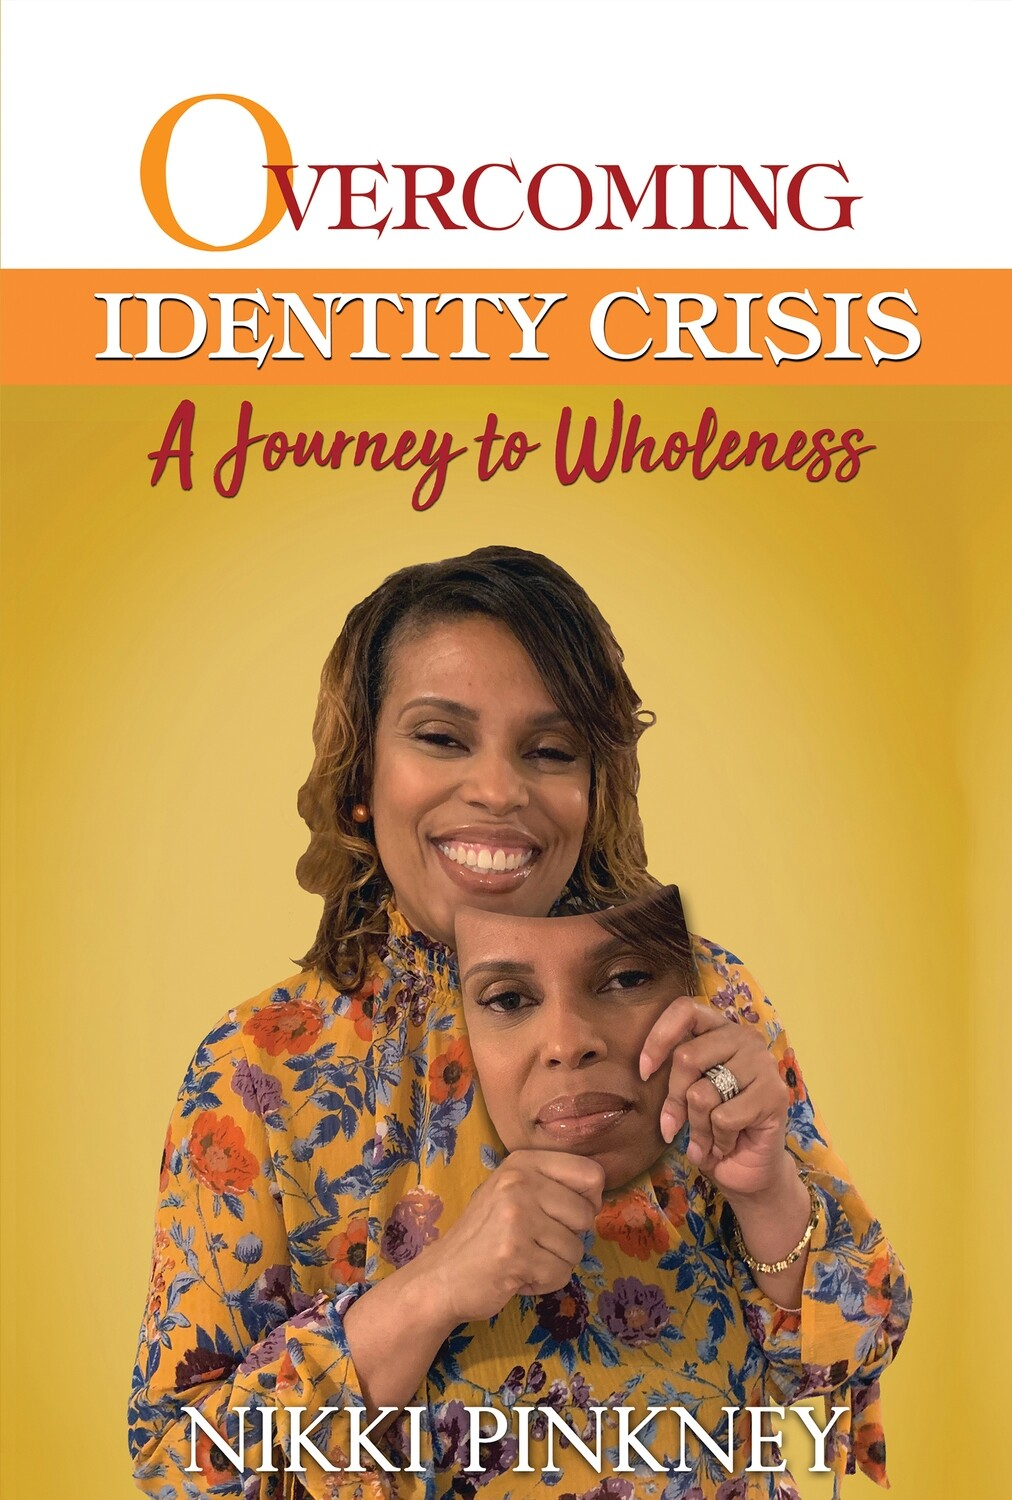 Overcoming Identity Crisis: A Journey to Wholeness by Nikki Pinkney